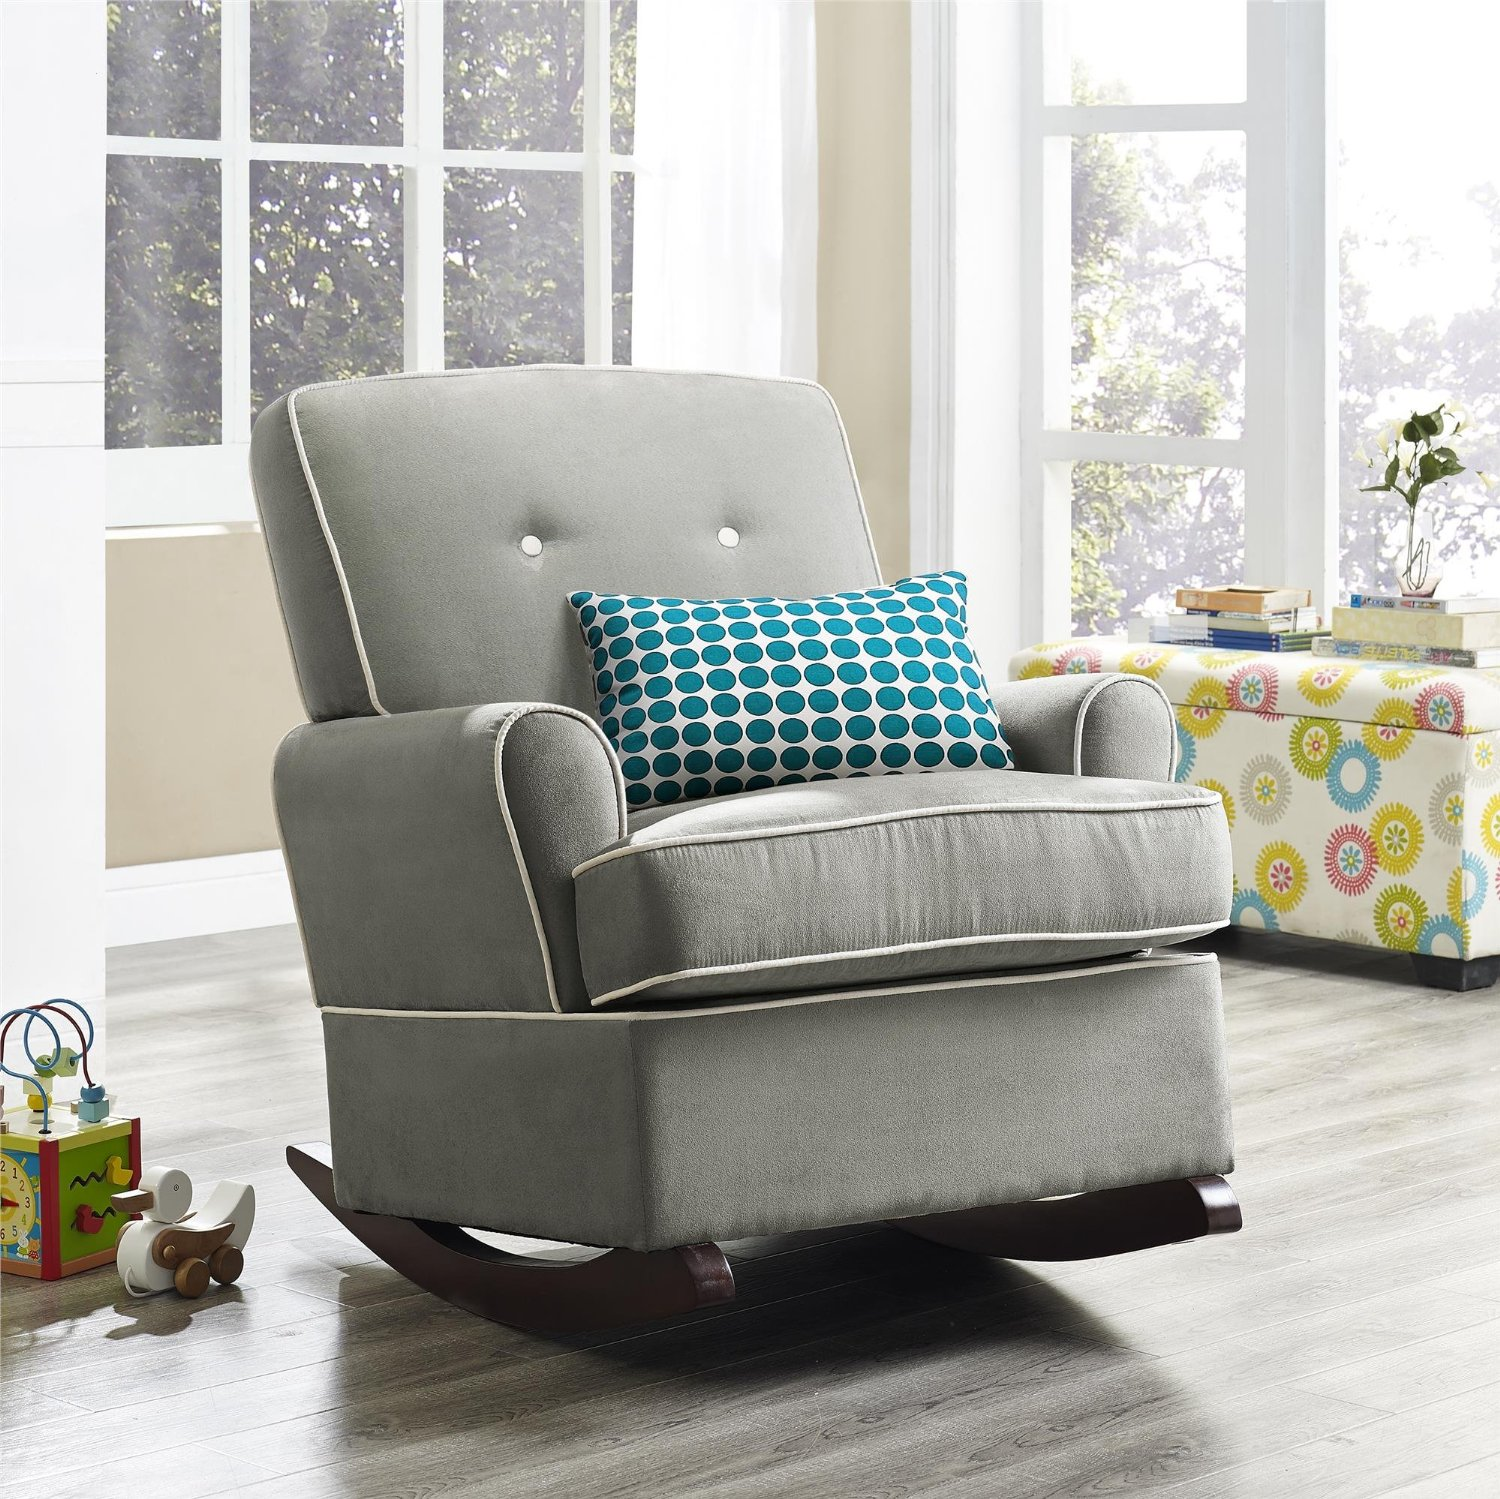 The Best Upholstered Rocking Chair 2017 Best Rocking Chairs